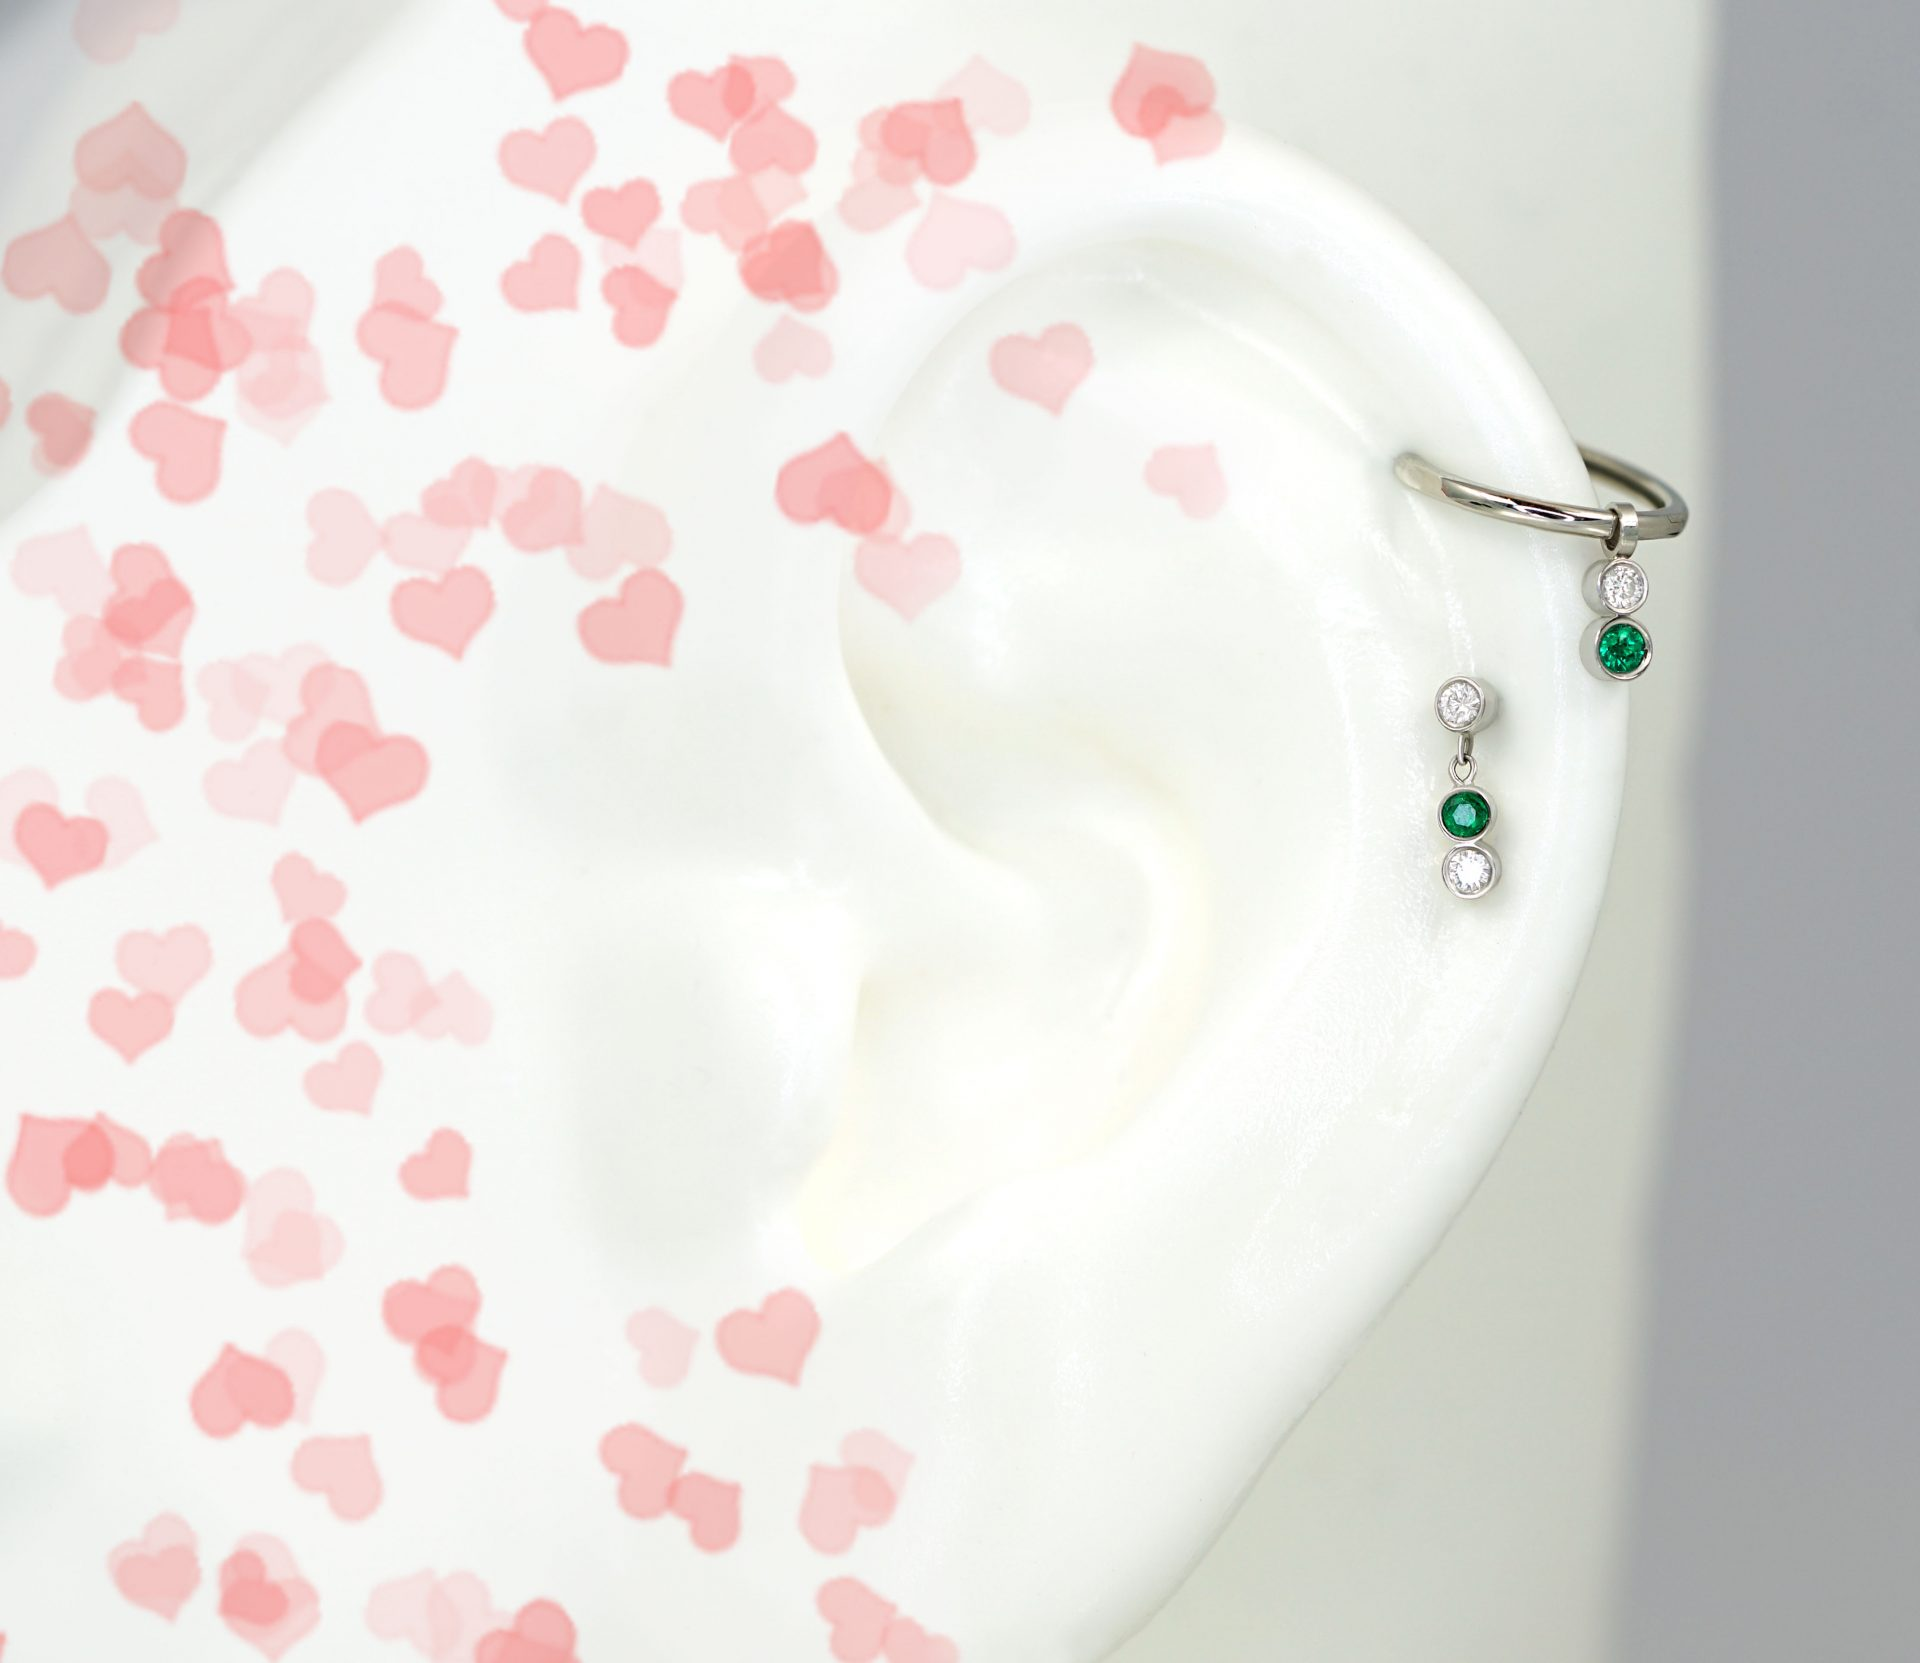 valentine-jewellery-gift-idea-set-of-18k-solid-gold-earrings-for-helix-cartilage-best-price